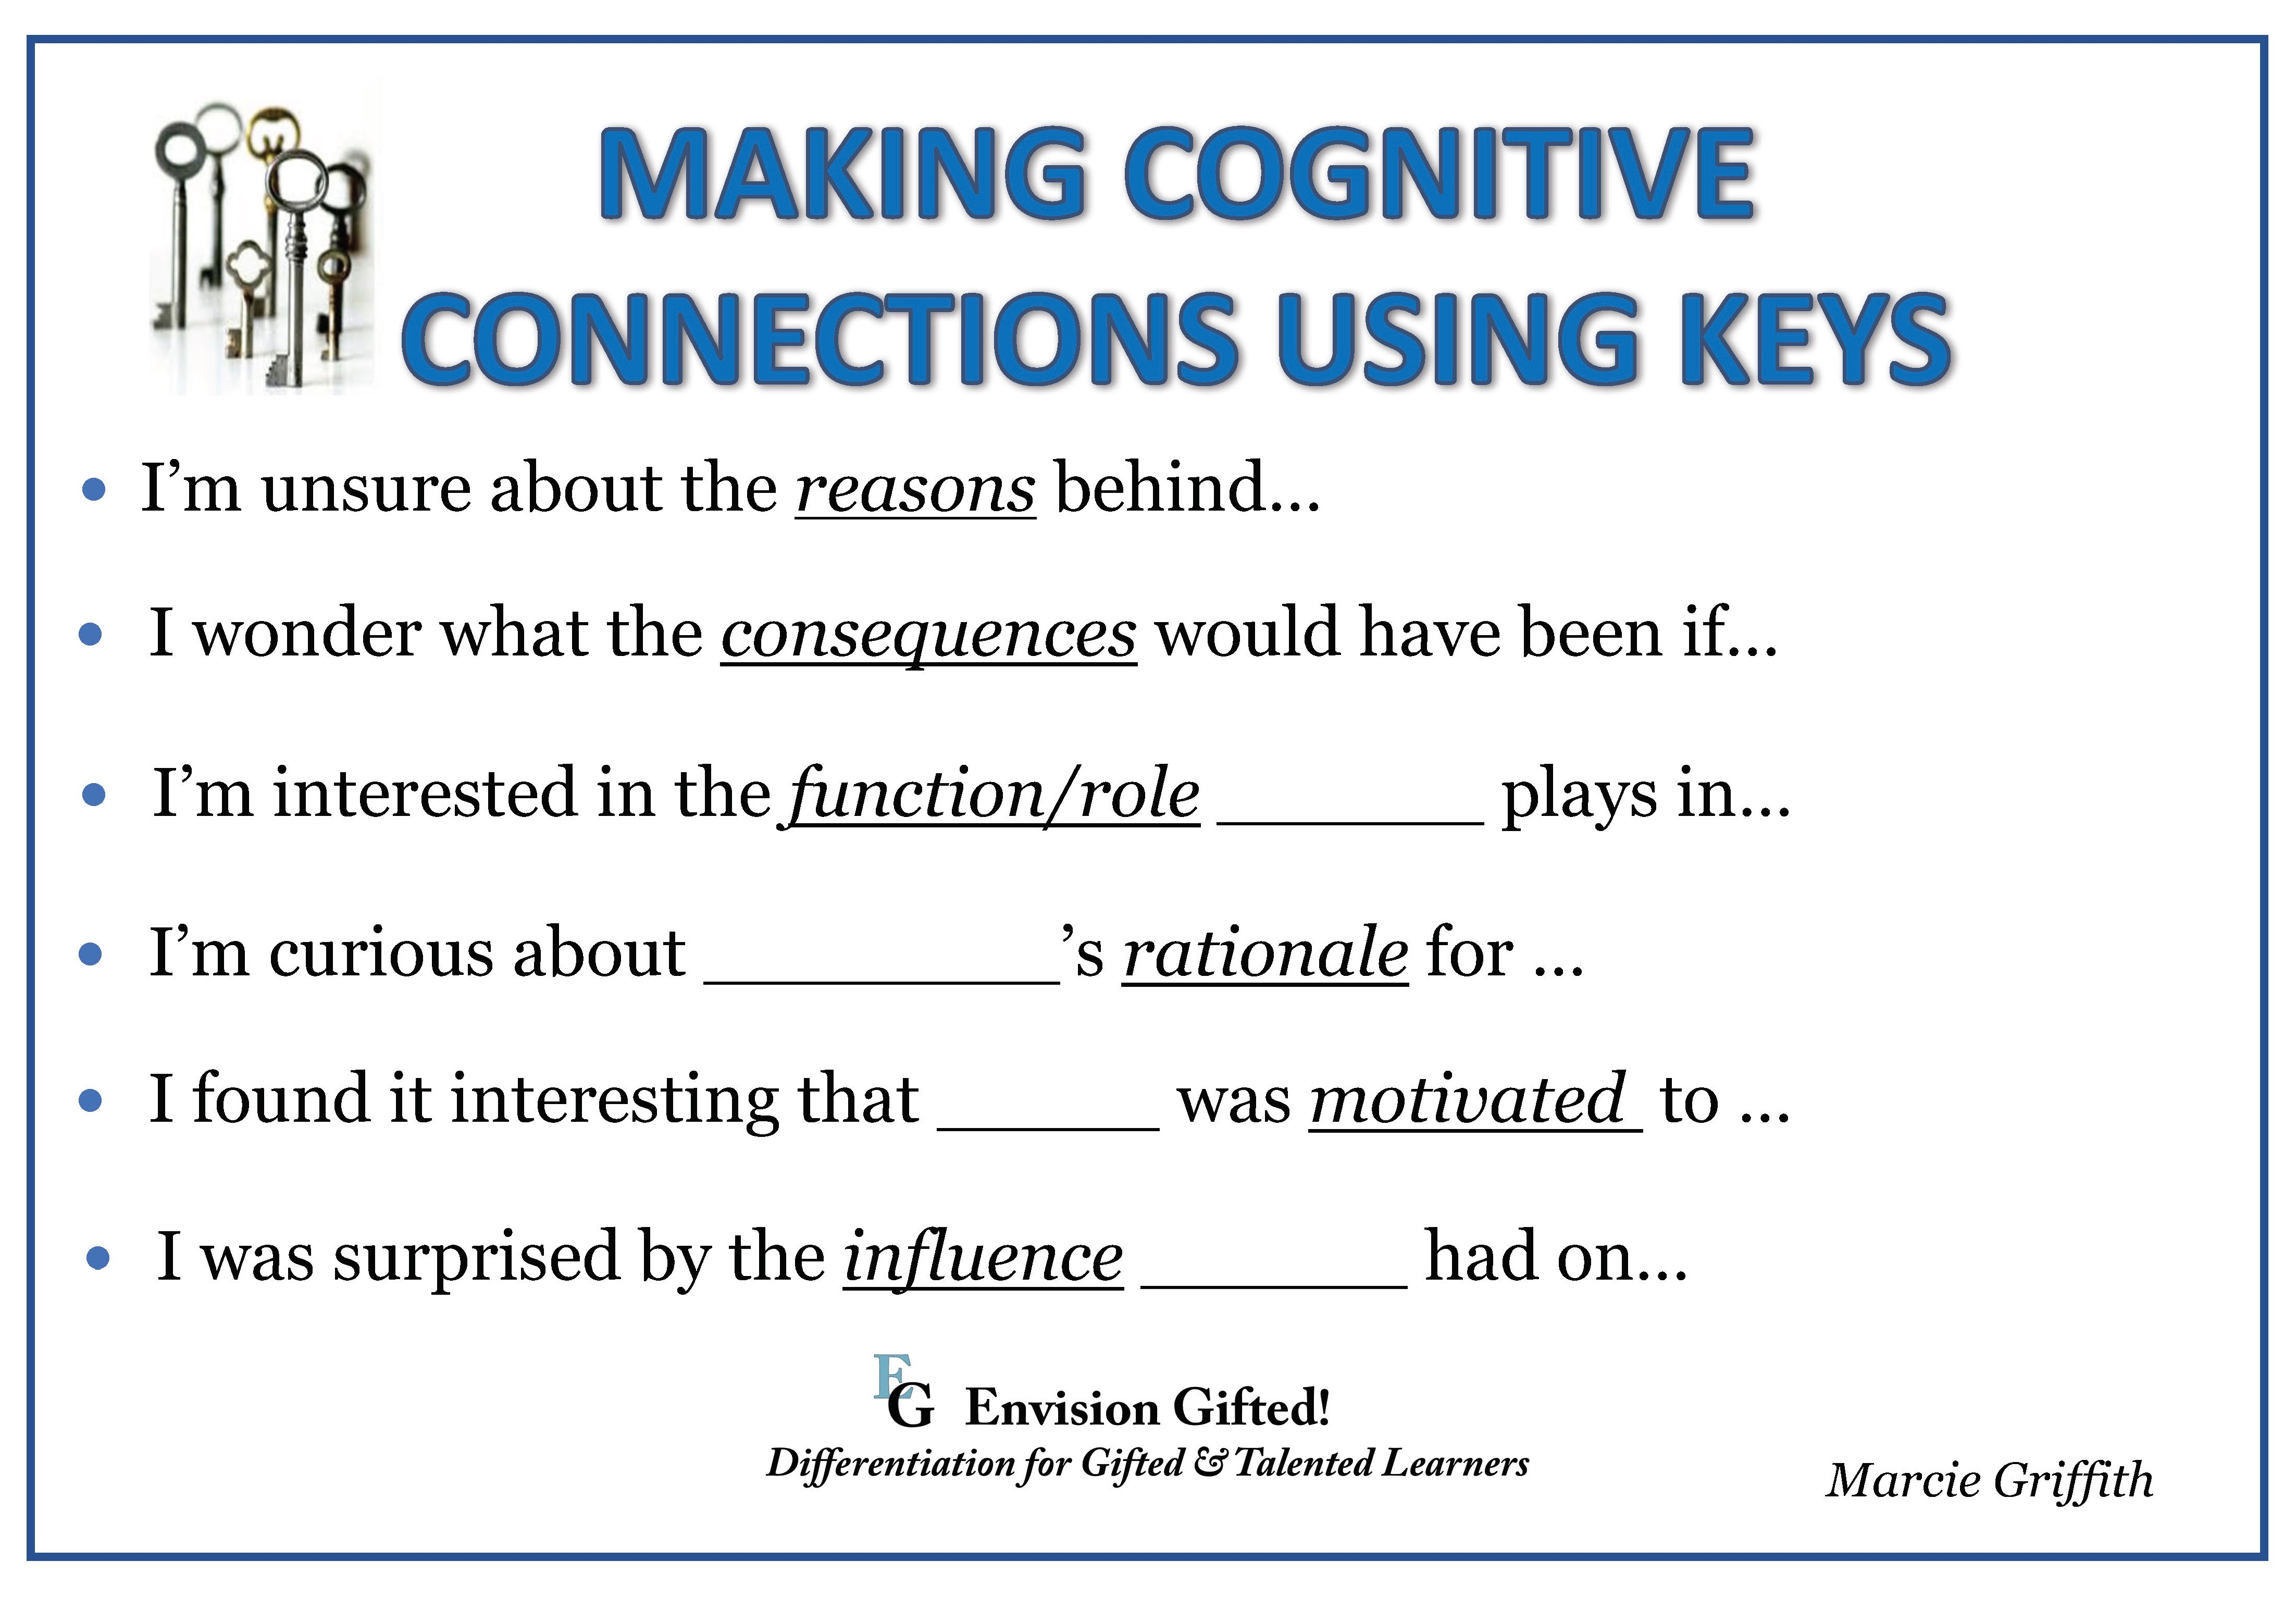 Envision Gifted. Cognitive Connections Keys